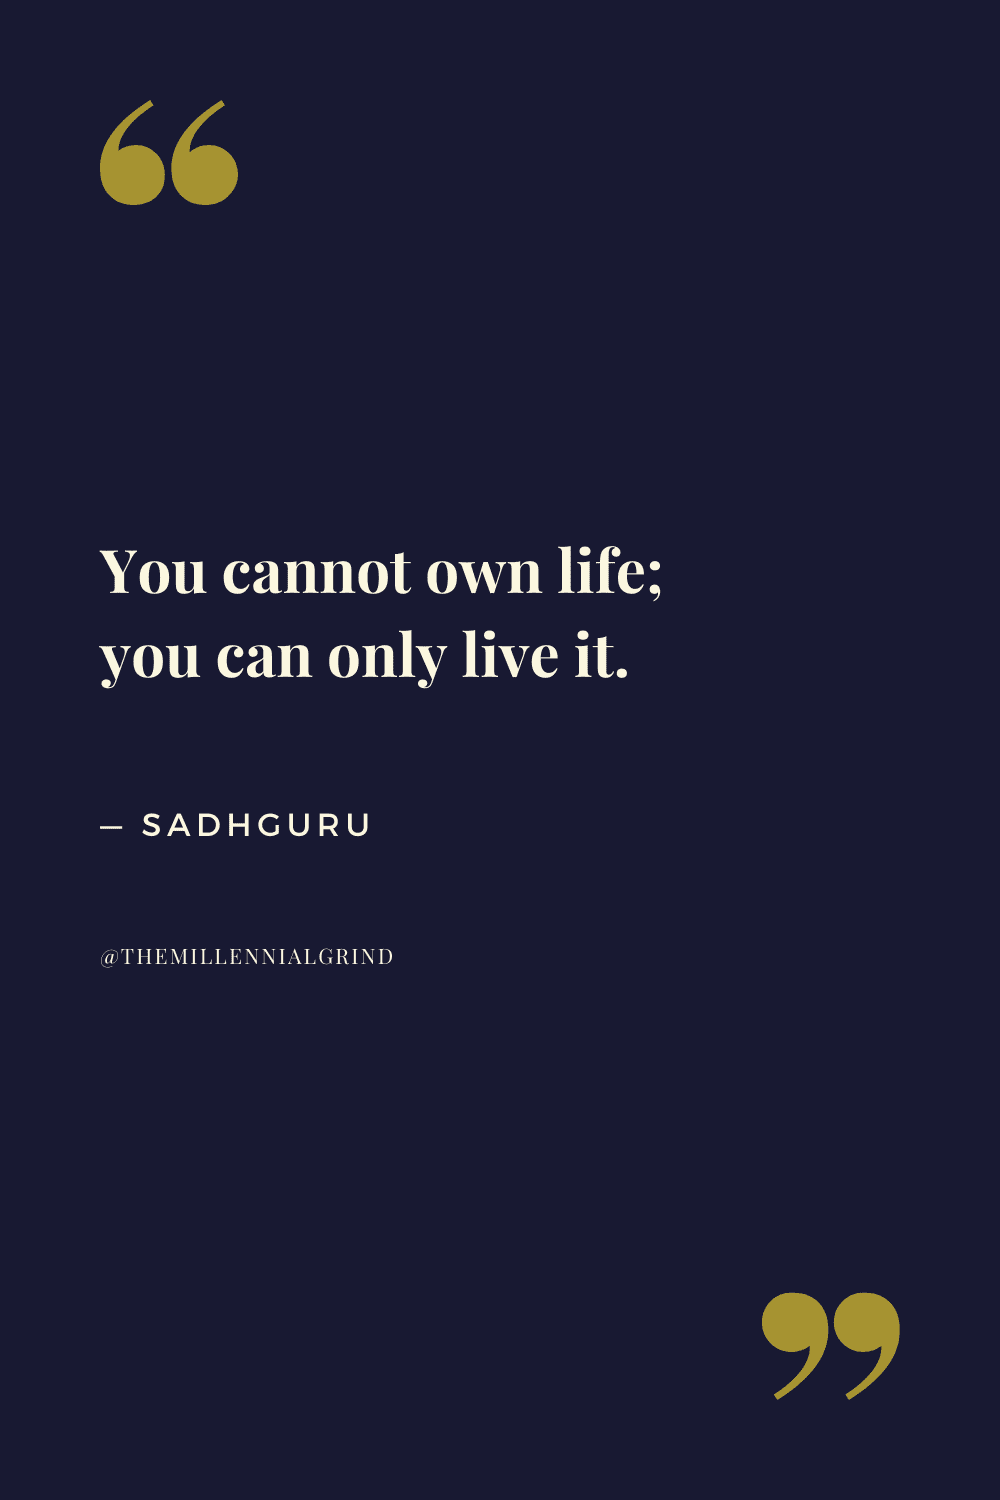 You cannot own life; you can only live it.